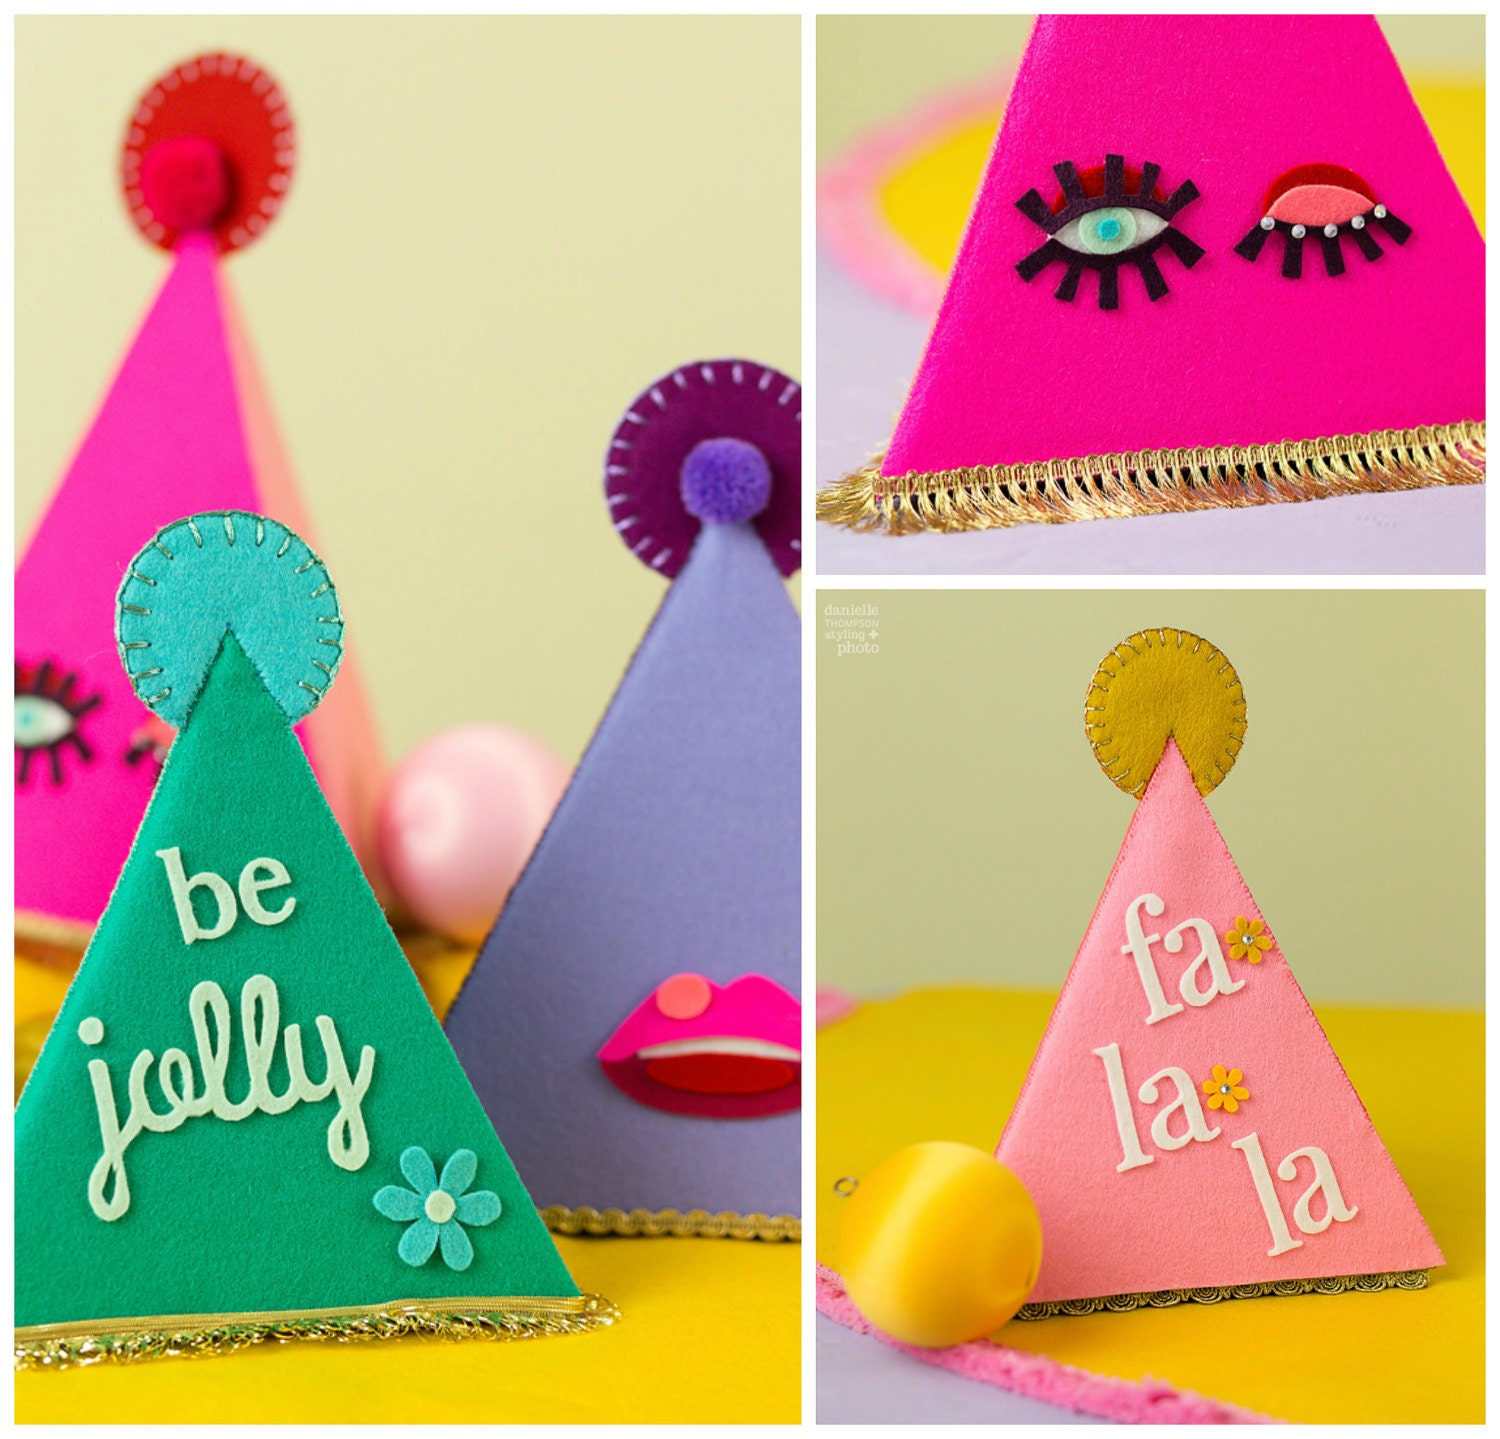 Colorful, fun and made with pure Wool Felt!